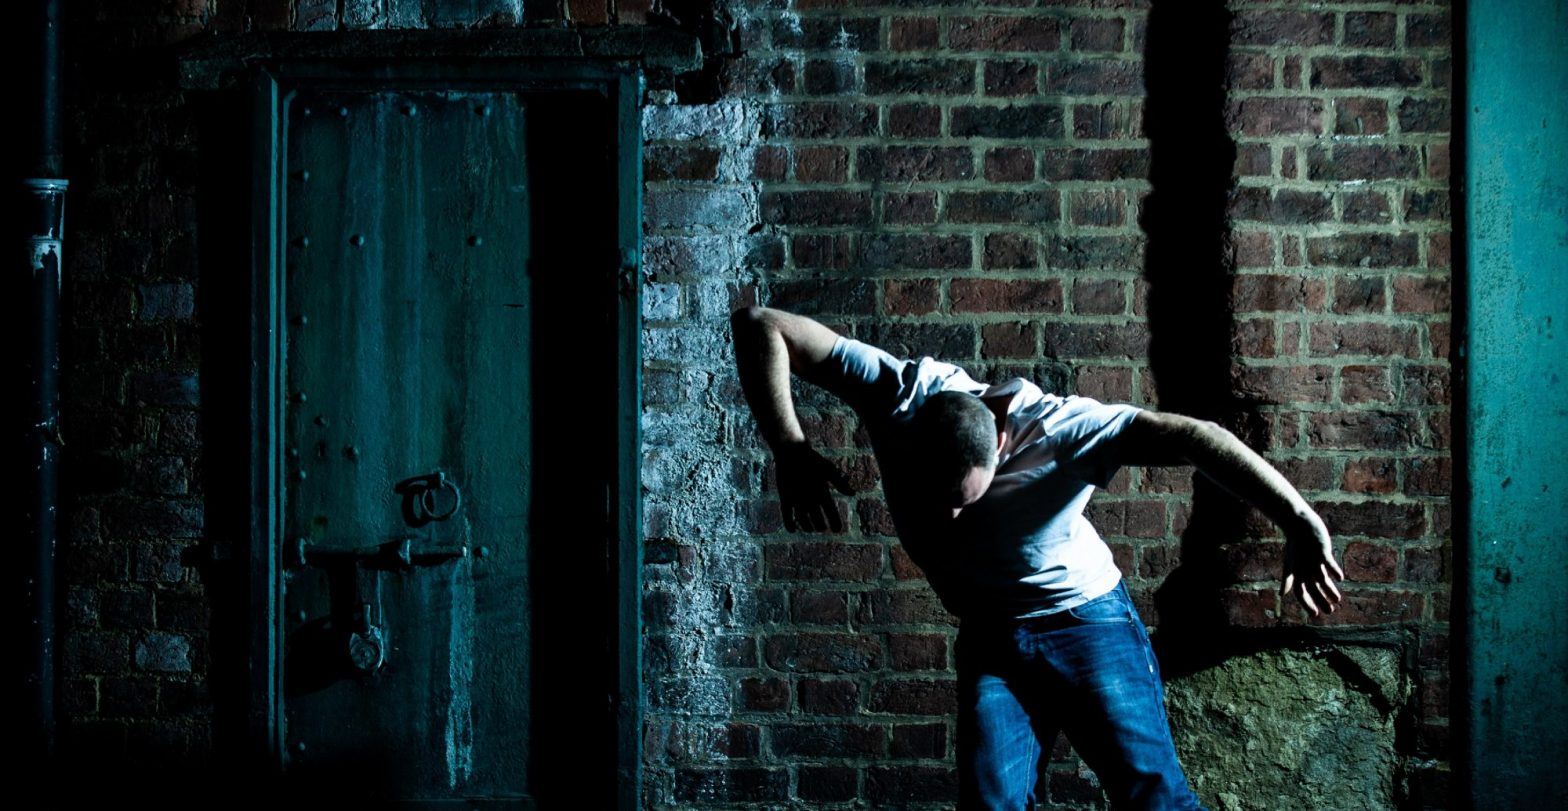 Urban setting with man performing contemporary dance.